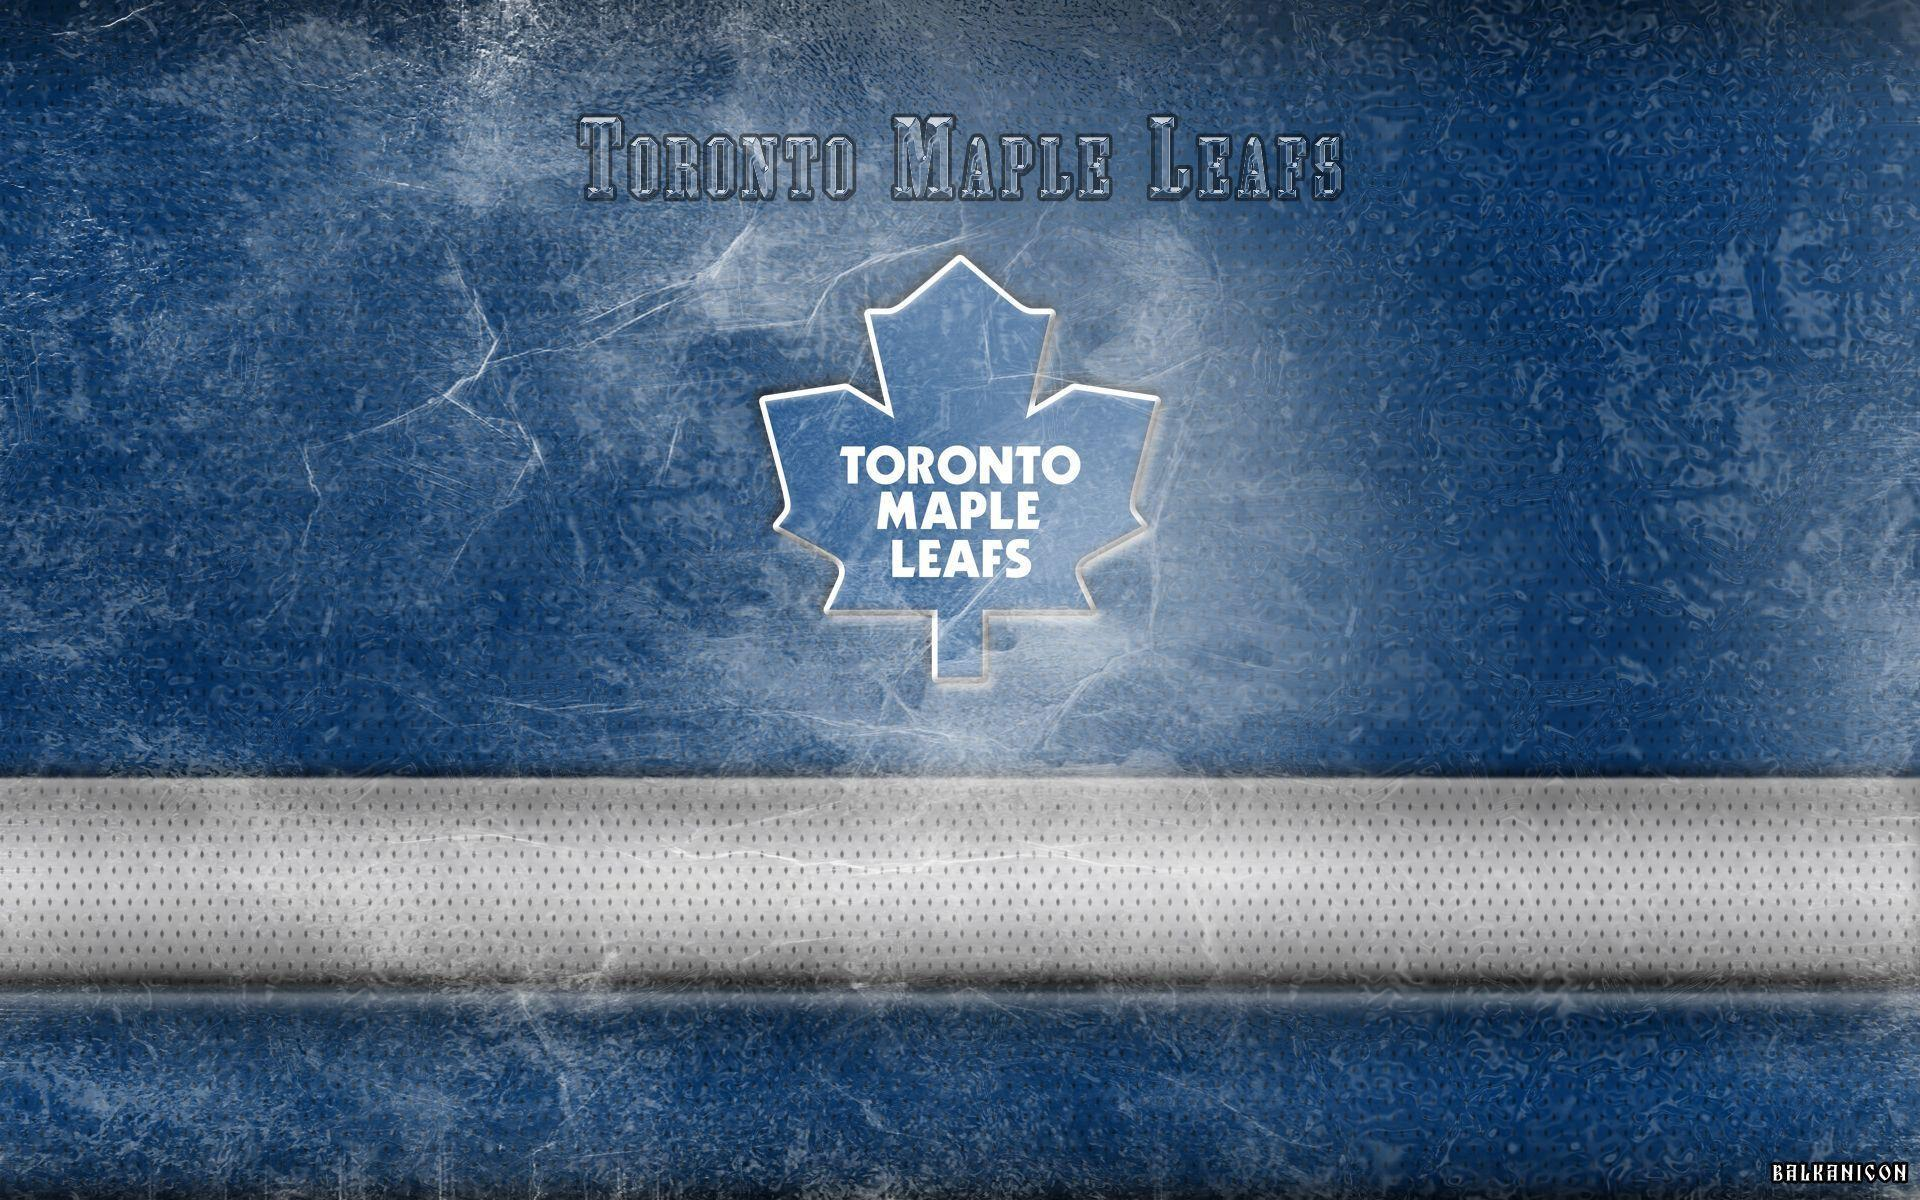 Toronto Maple Leafs wallpapers by Balkanicon